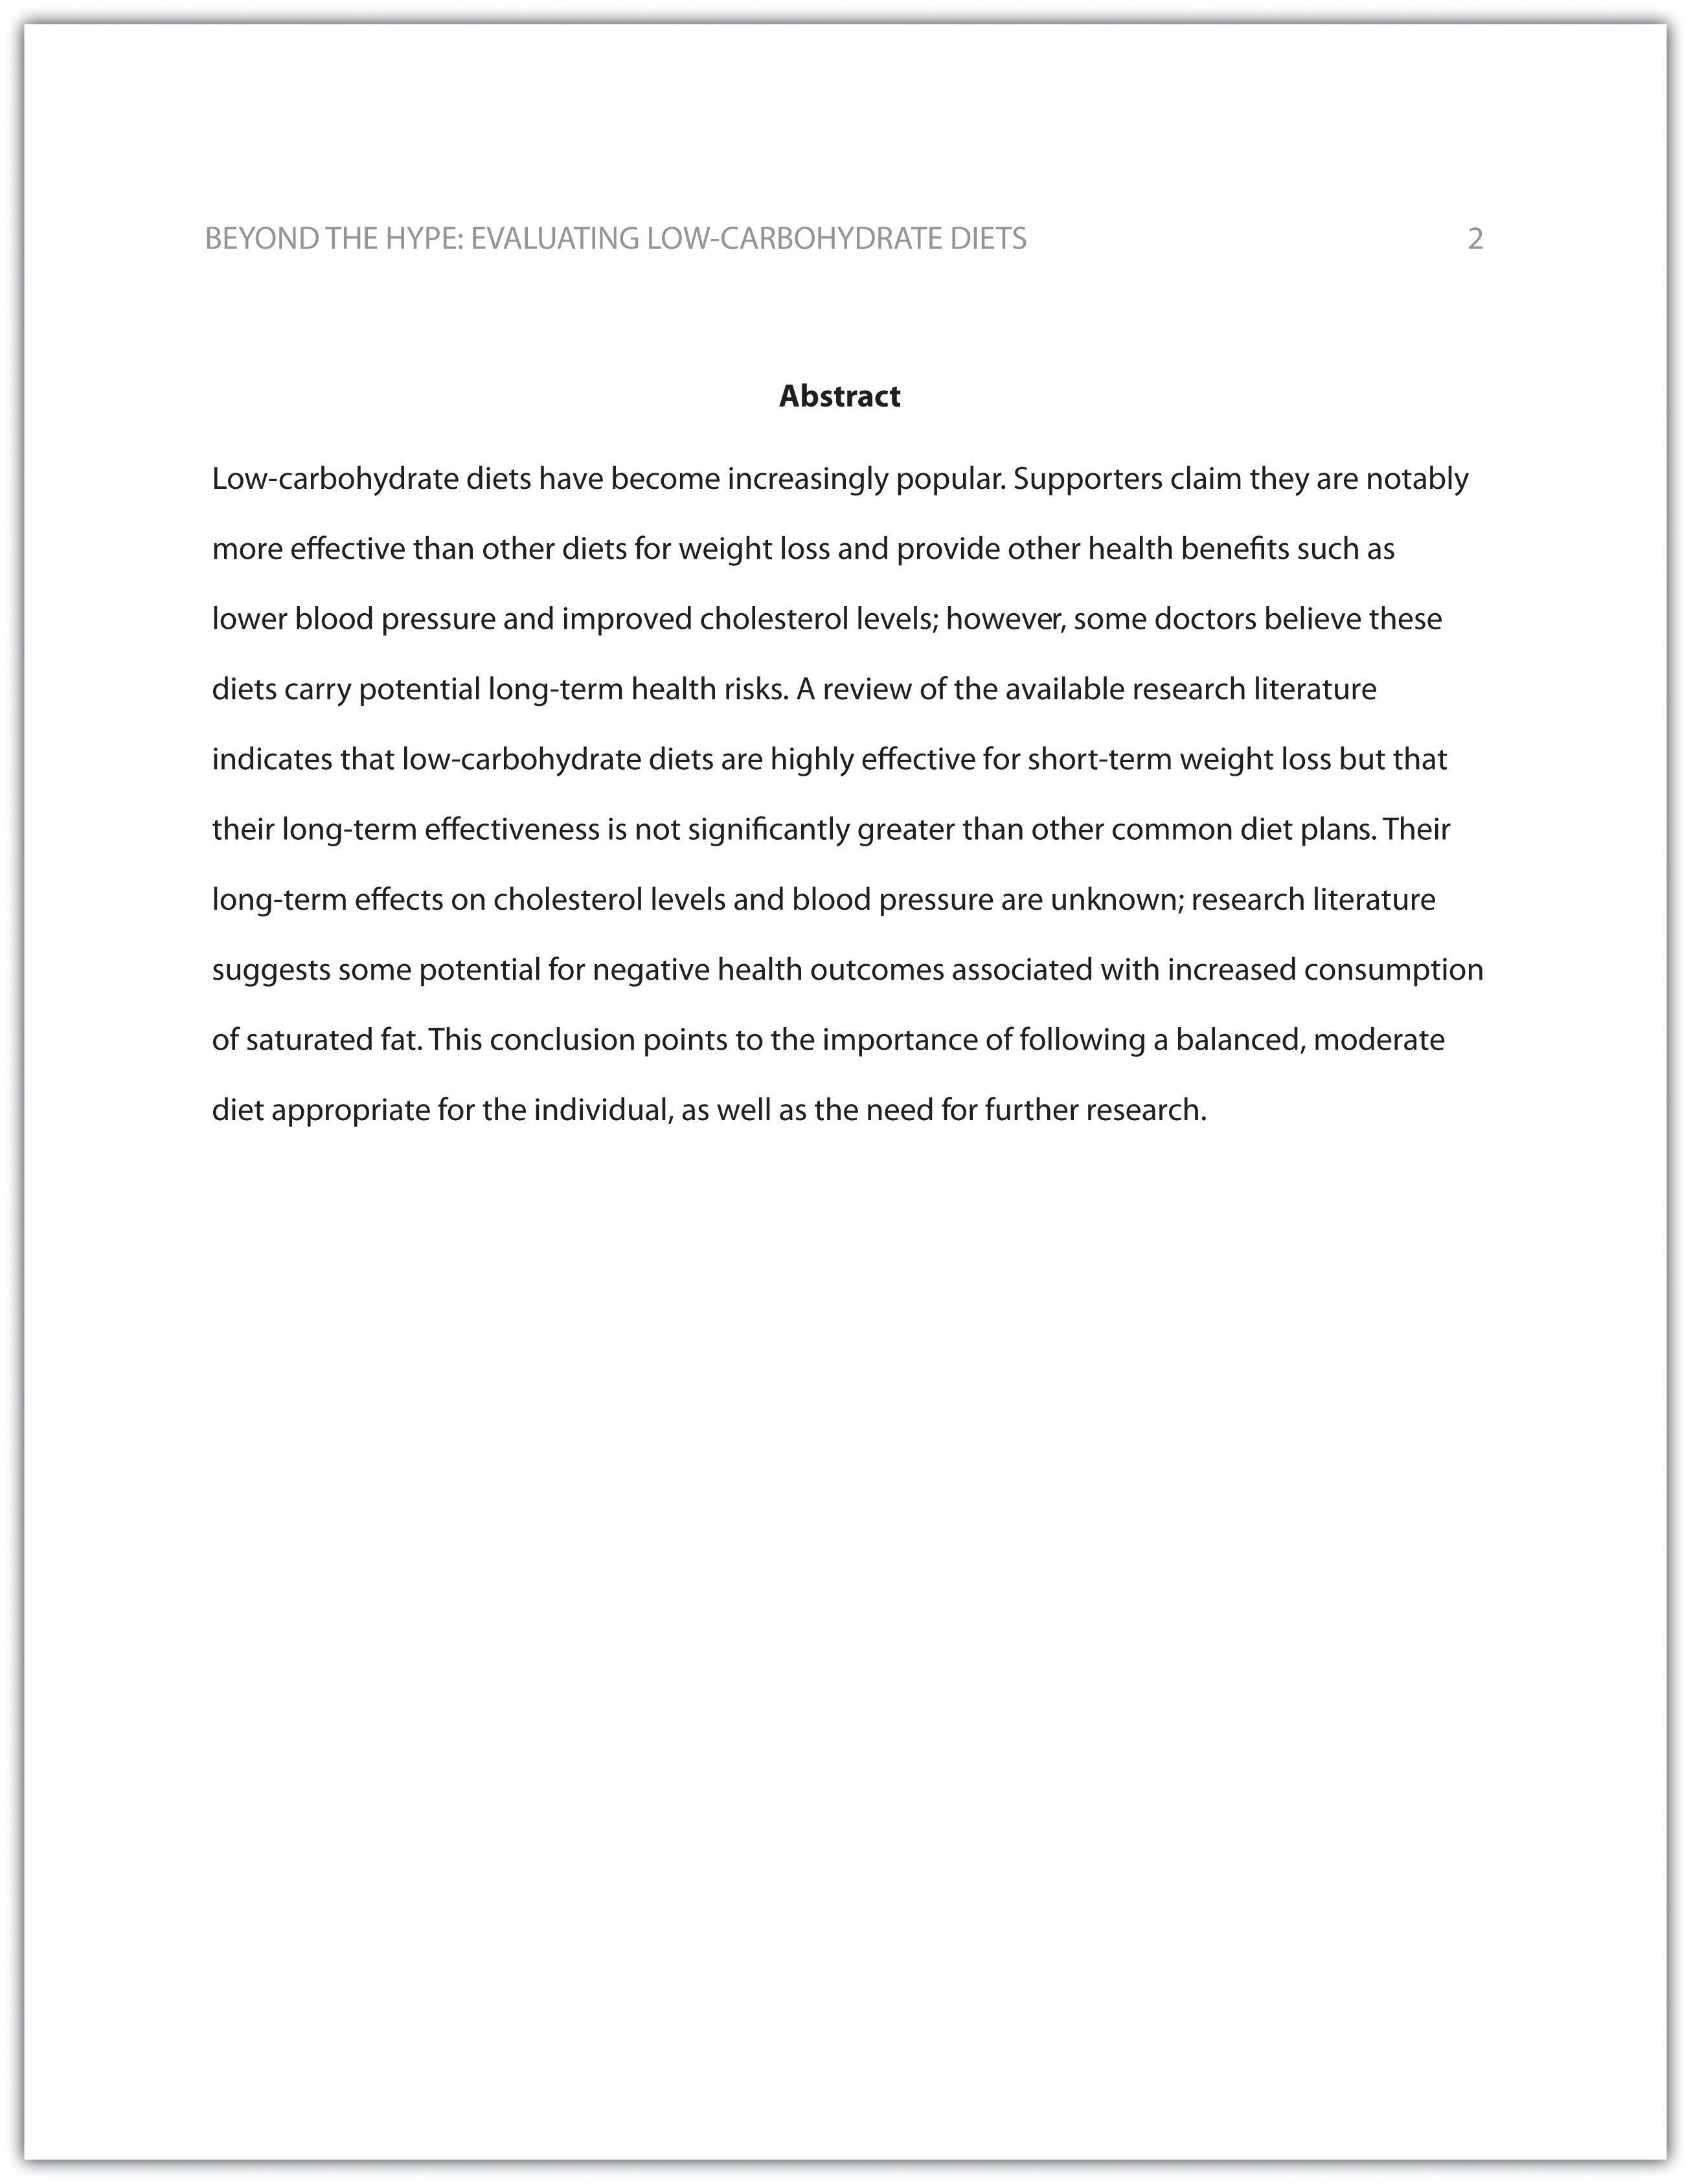 Good Cause And Effect Essay Topics Characteristics Of A Well Written Thesis Statement Speak By Laurie Halse Anderson Essay also Us Essay Characteristics Of A Well Written Thesis Statement  Buy An Essay  Abortion Definition Essay